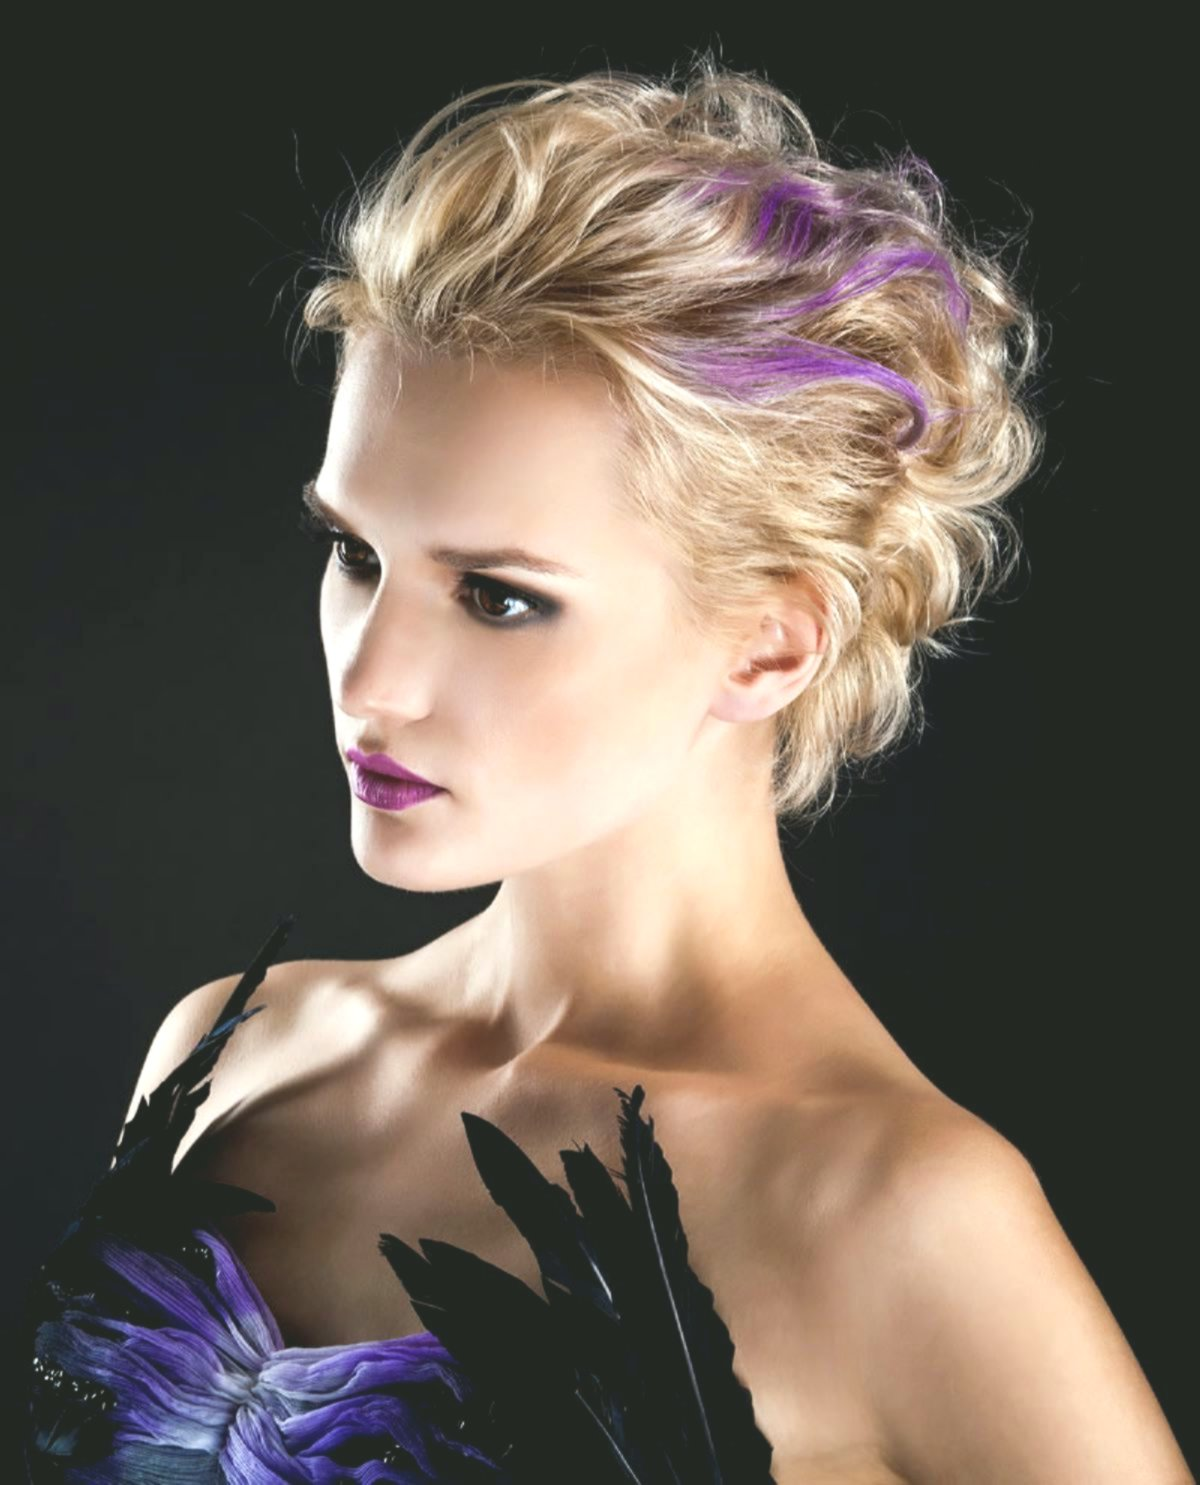 Best Short Curly Hairstyles Inspiration - Fresh Short Curly Hairstyles Photo